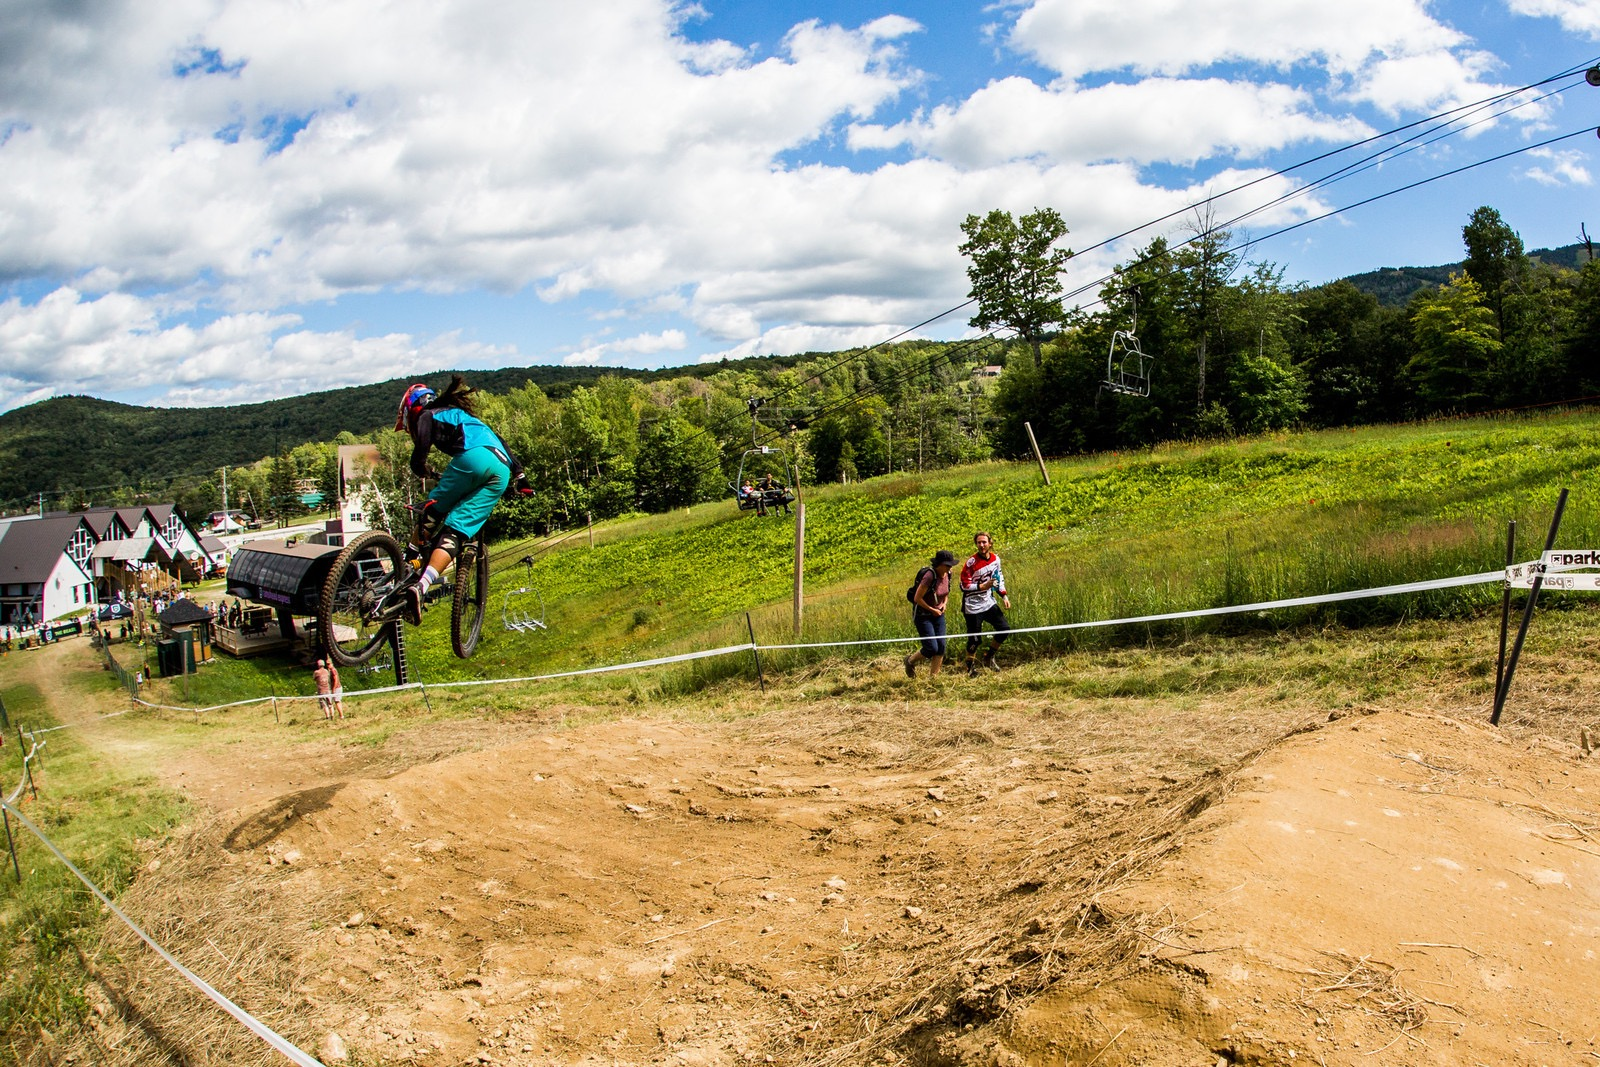 Kicked out whip at Killington Bike Park's Pro GRT in Vermont. Photographer: Zach Faulkner